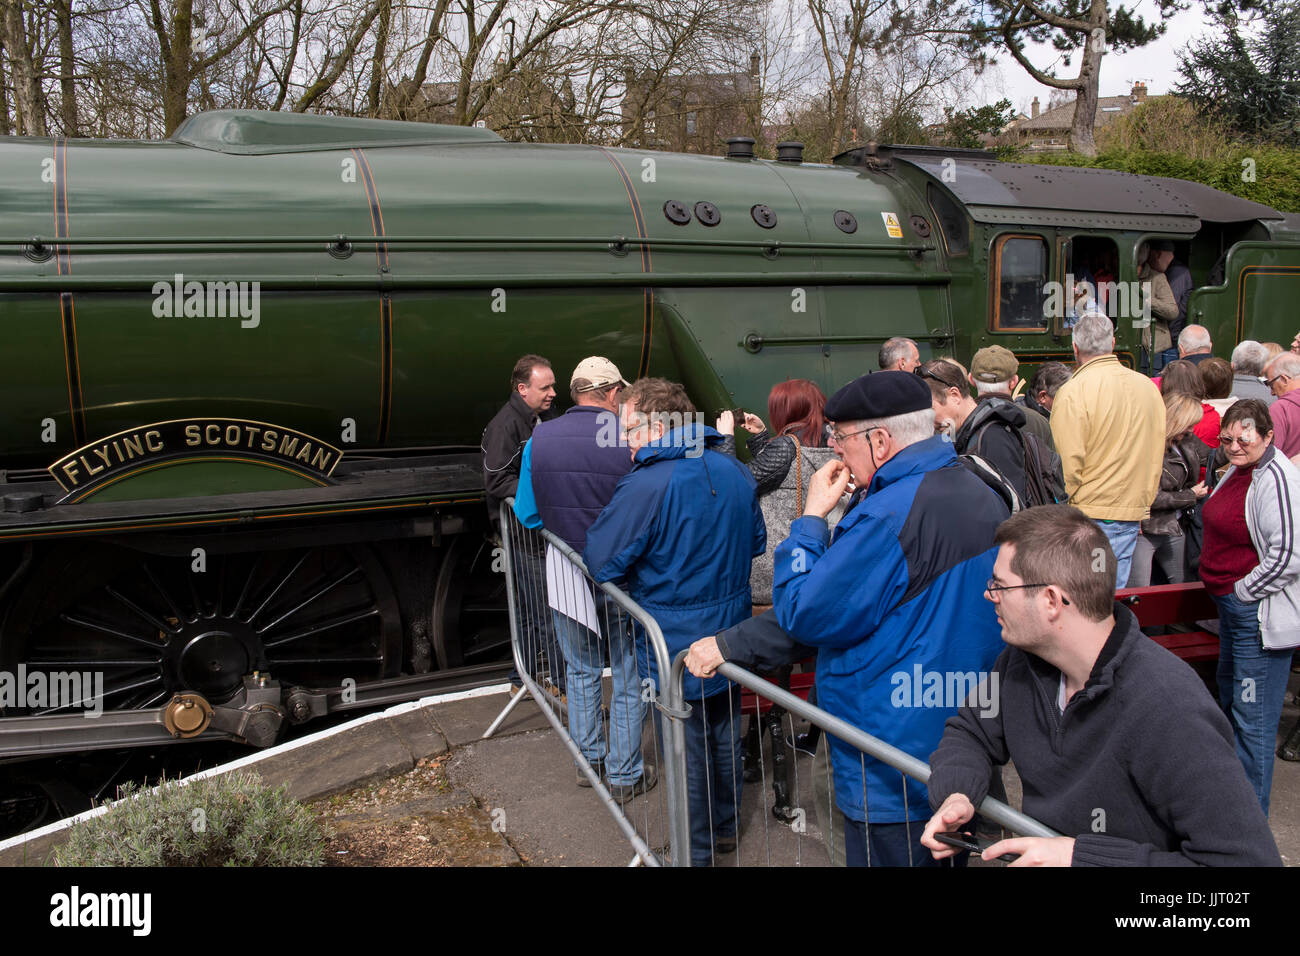 Crowd of people view iconic steam locomotive engine, LNER Class A3 60103 Flying Scotsman - Keighley and Worth Valley - Stock Image